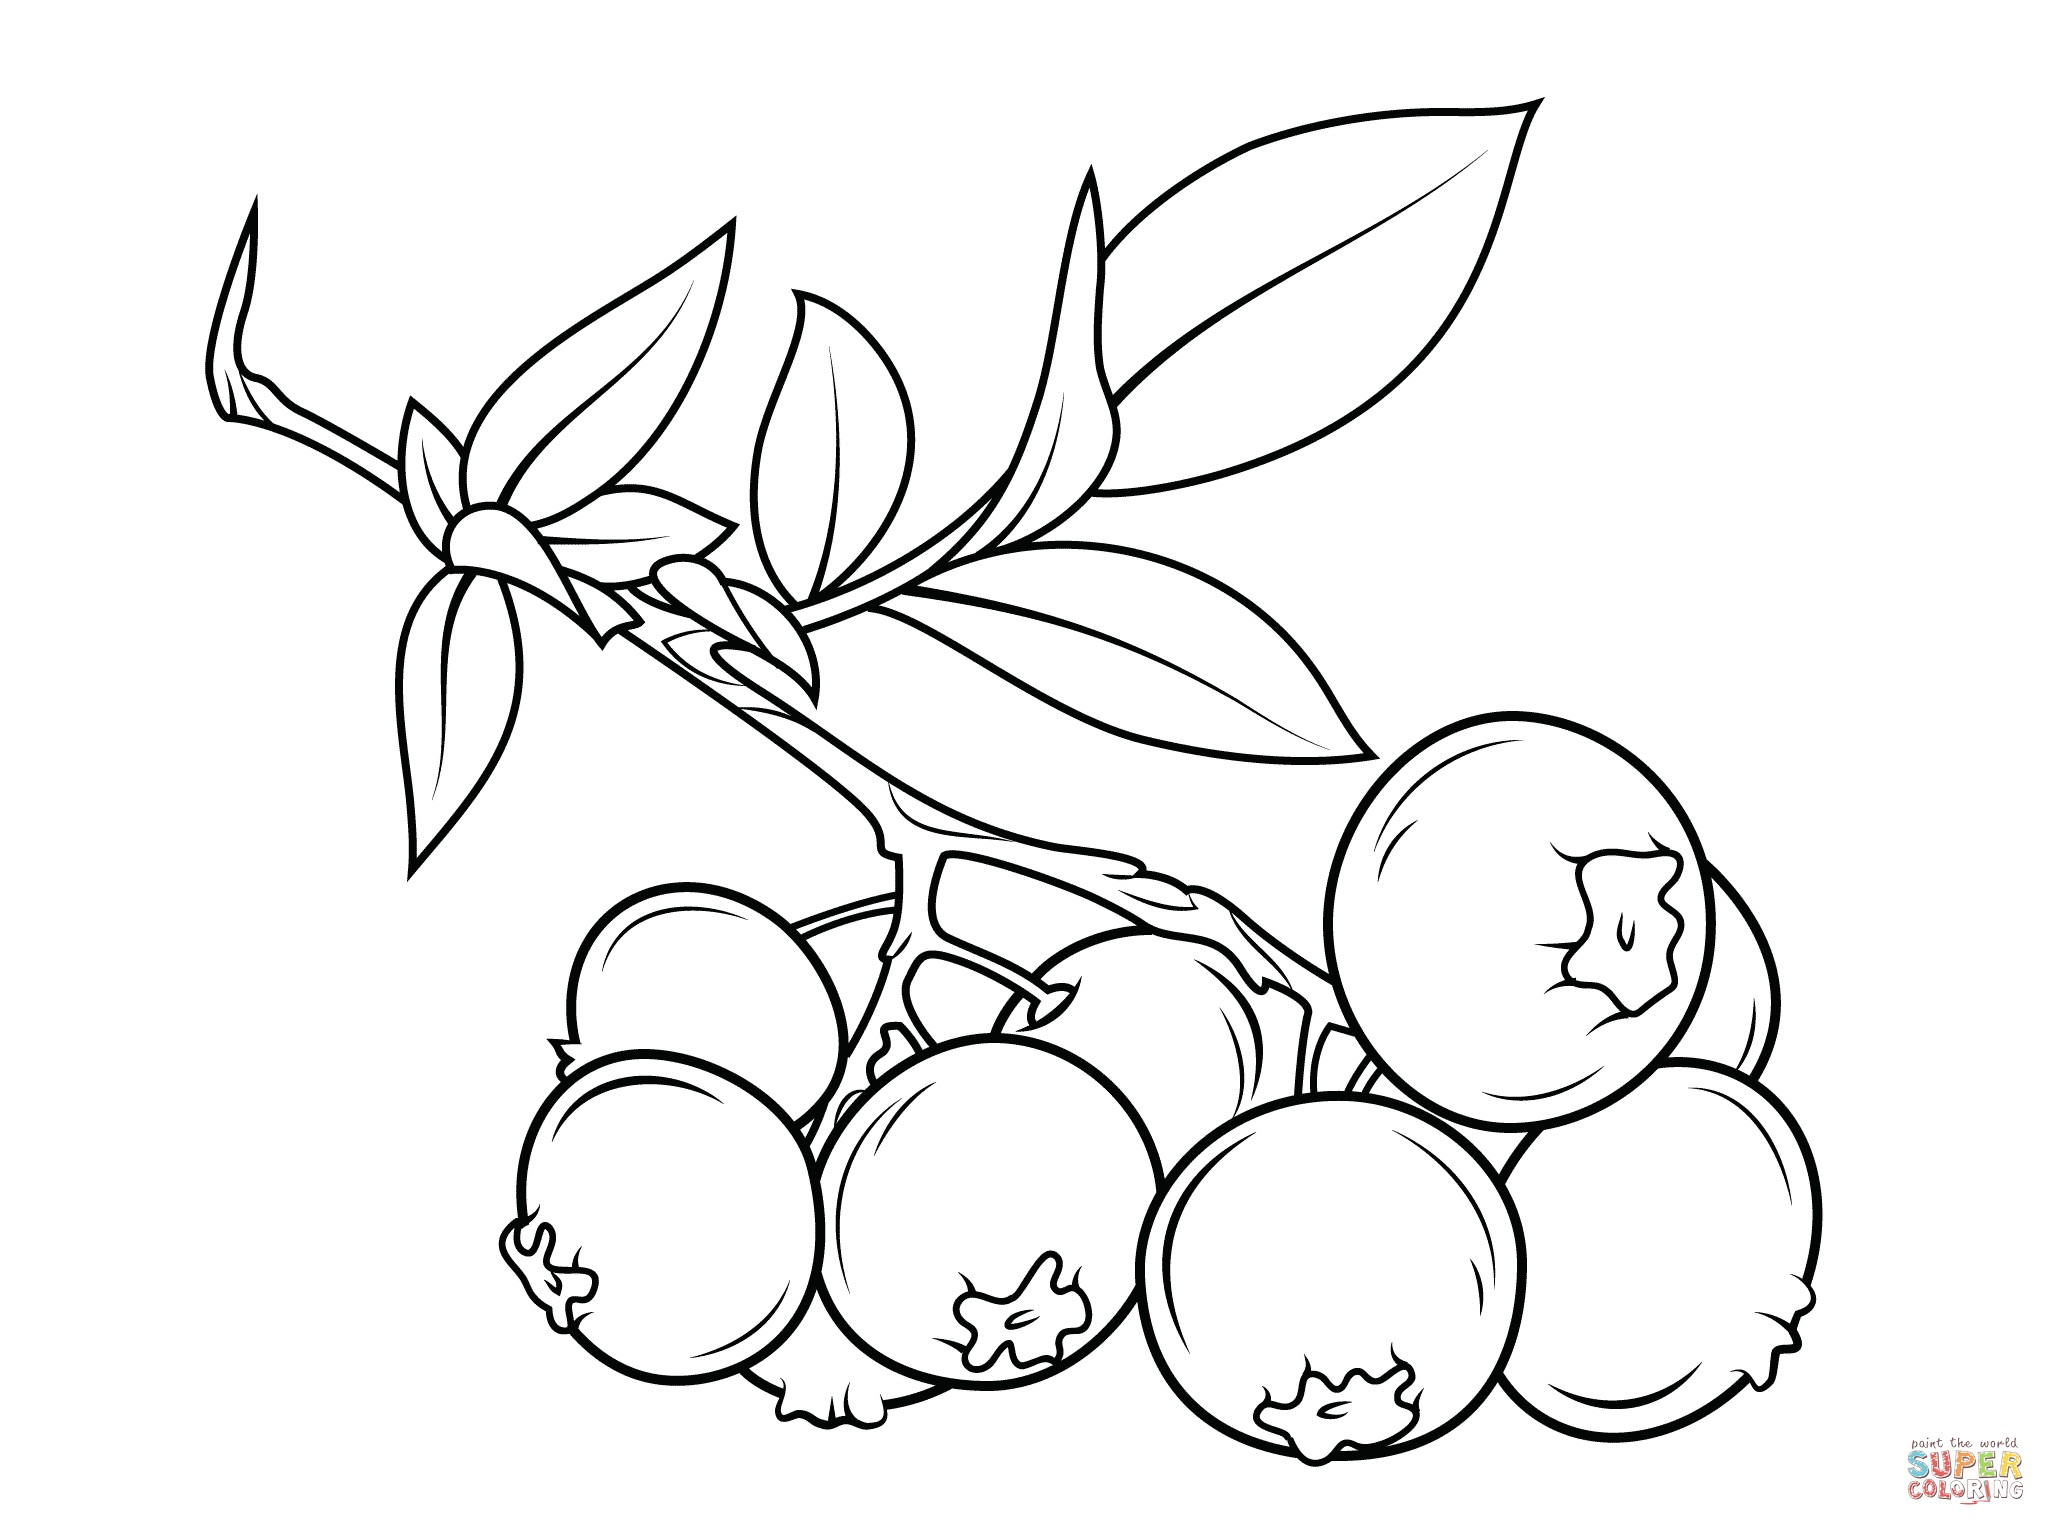 2046x1526 Grapes With Leaves Fruits And Berries Coloring Pages For Kids